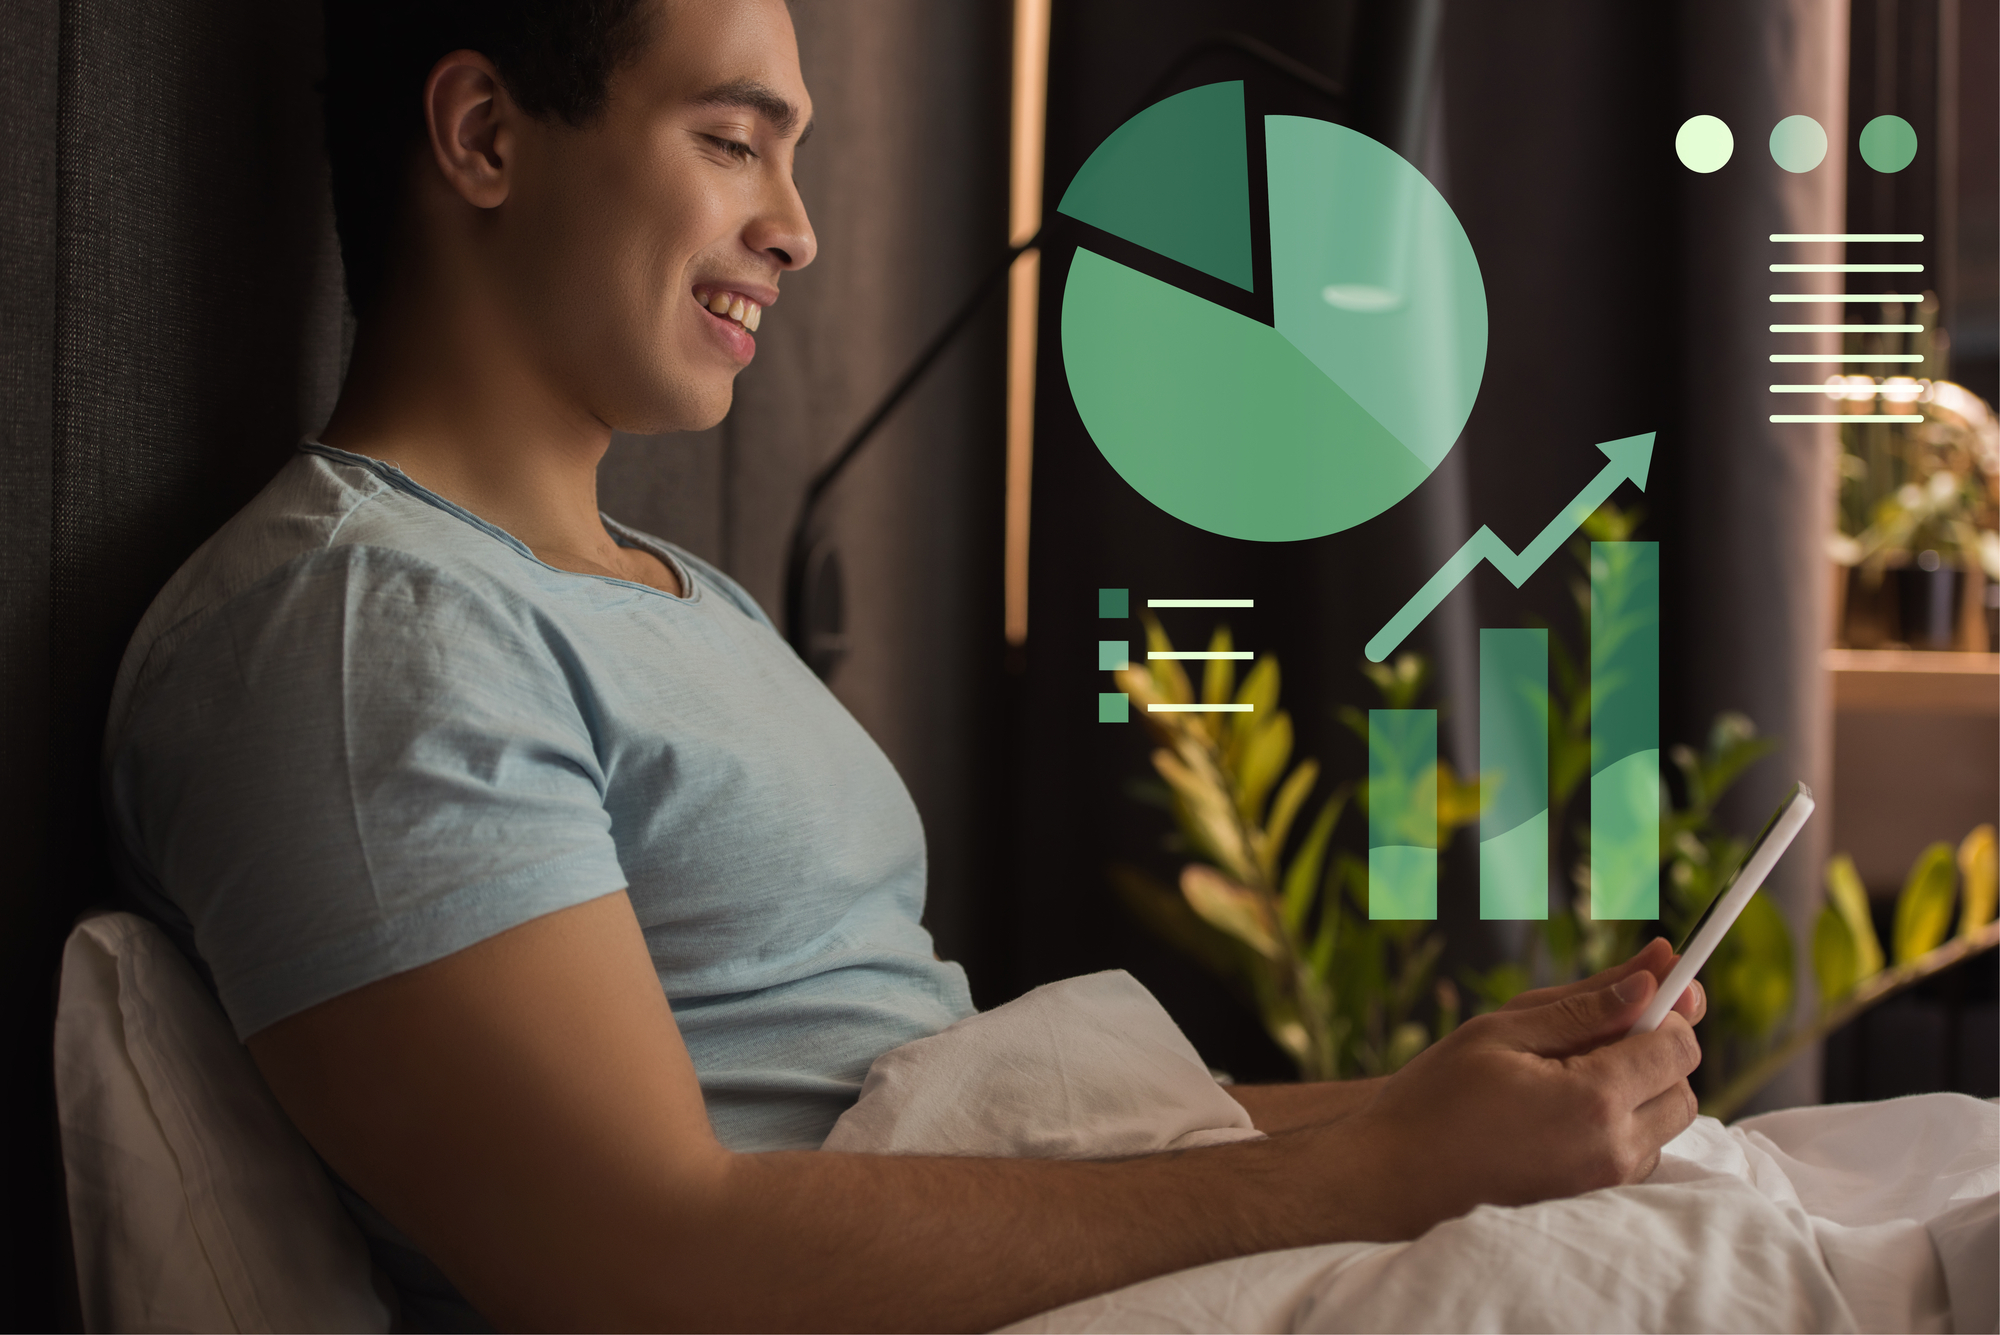 Smiling mixed race man using digital tablet in bed near charts and graphs illustration